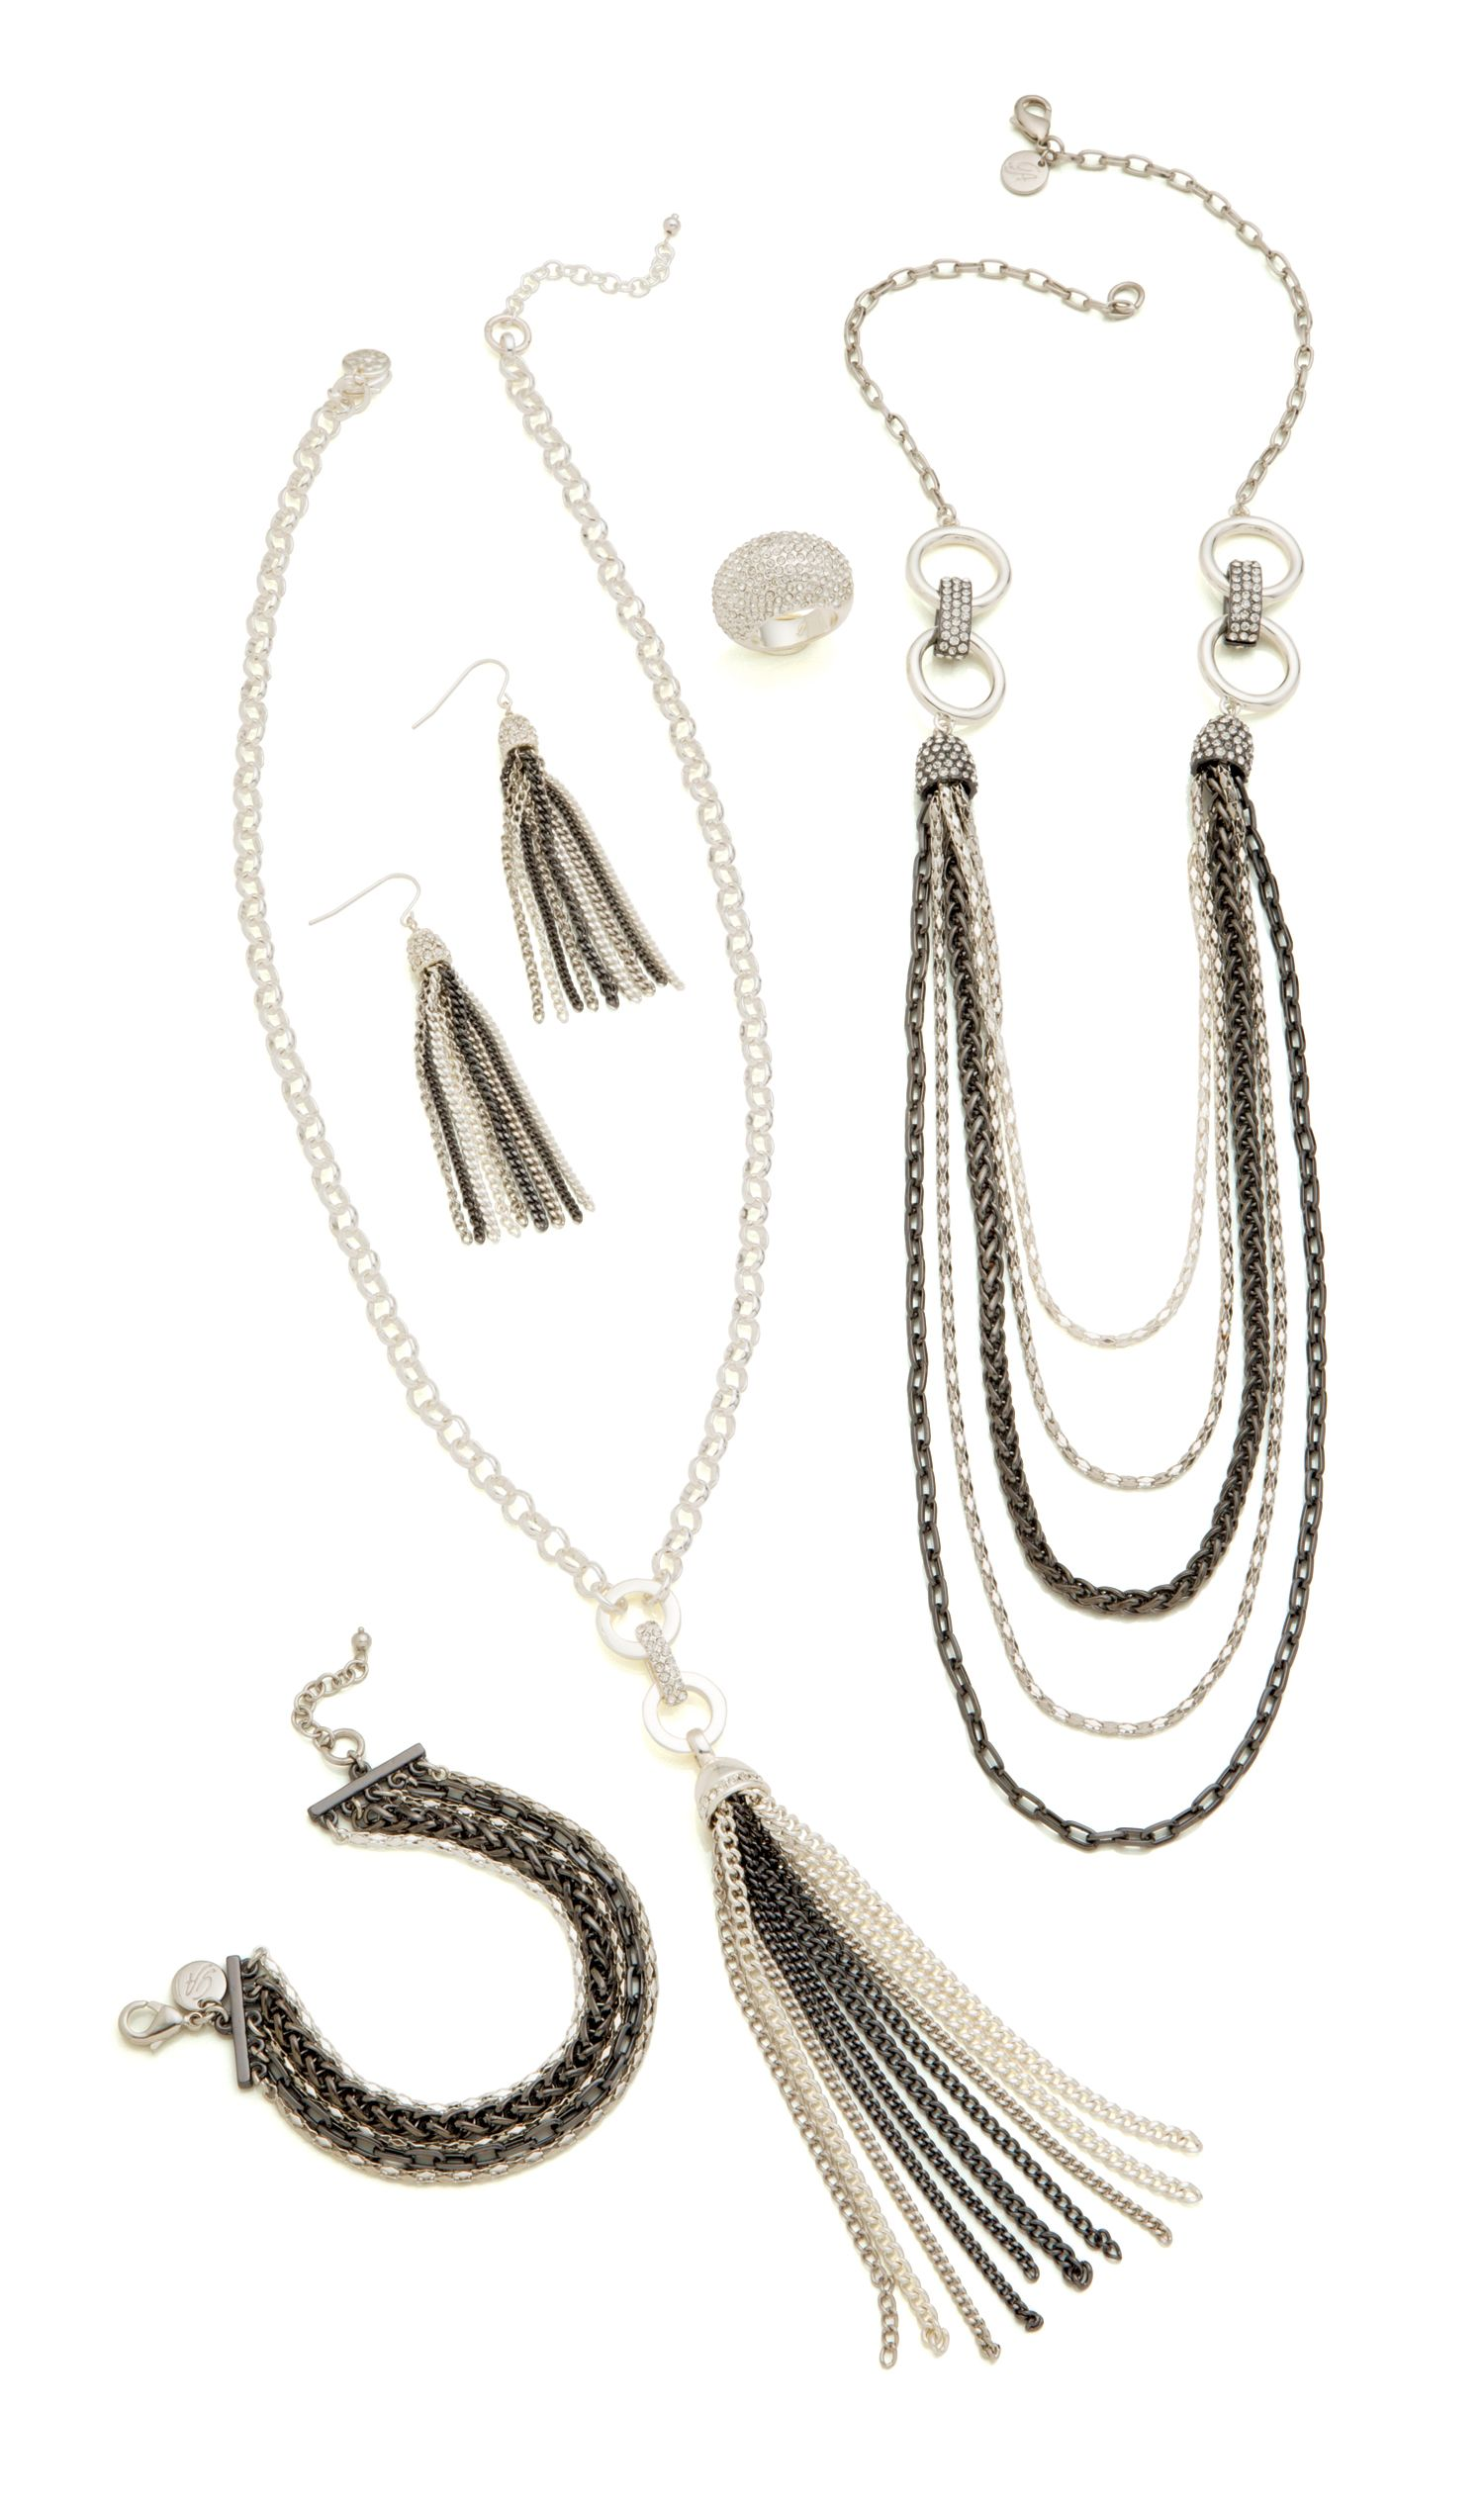 The Grace Adele Brooklyn Jewelry Collection